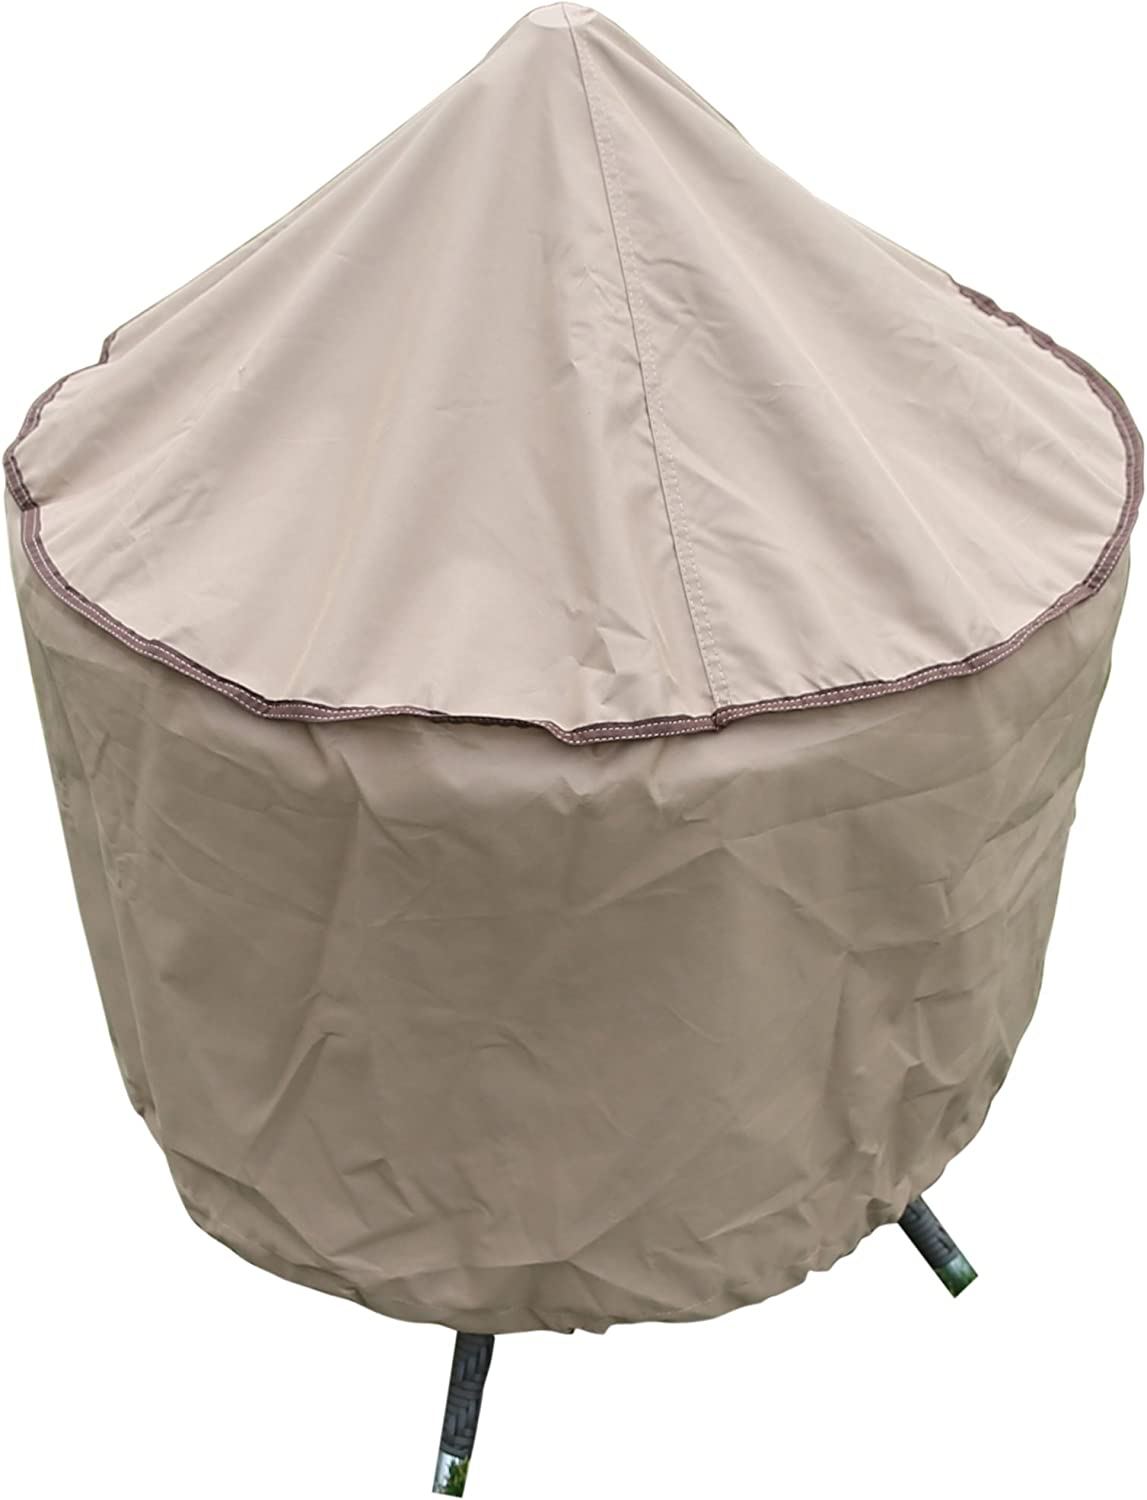 SORARA Round Fire Pit Cover Waterproof SEAL limited product Duty Outdoor and Heavy Branded goods